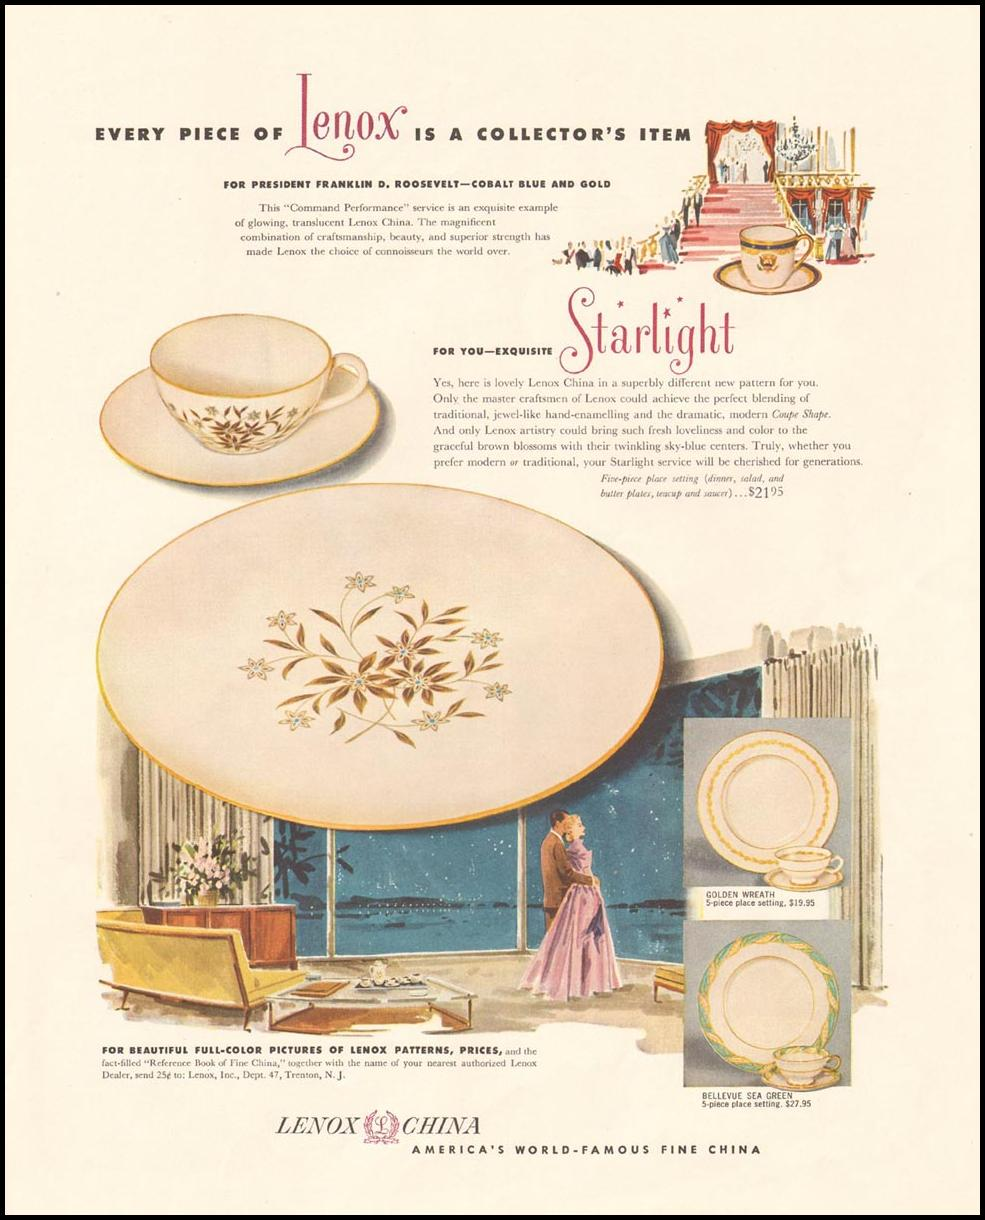 LENOX CHINA LADIES' HOME JOURNAL 03/01/1954 p. 127